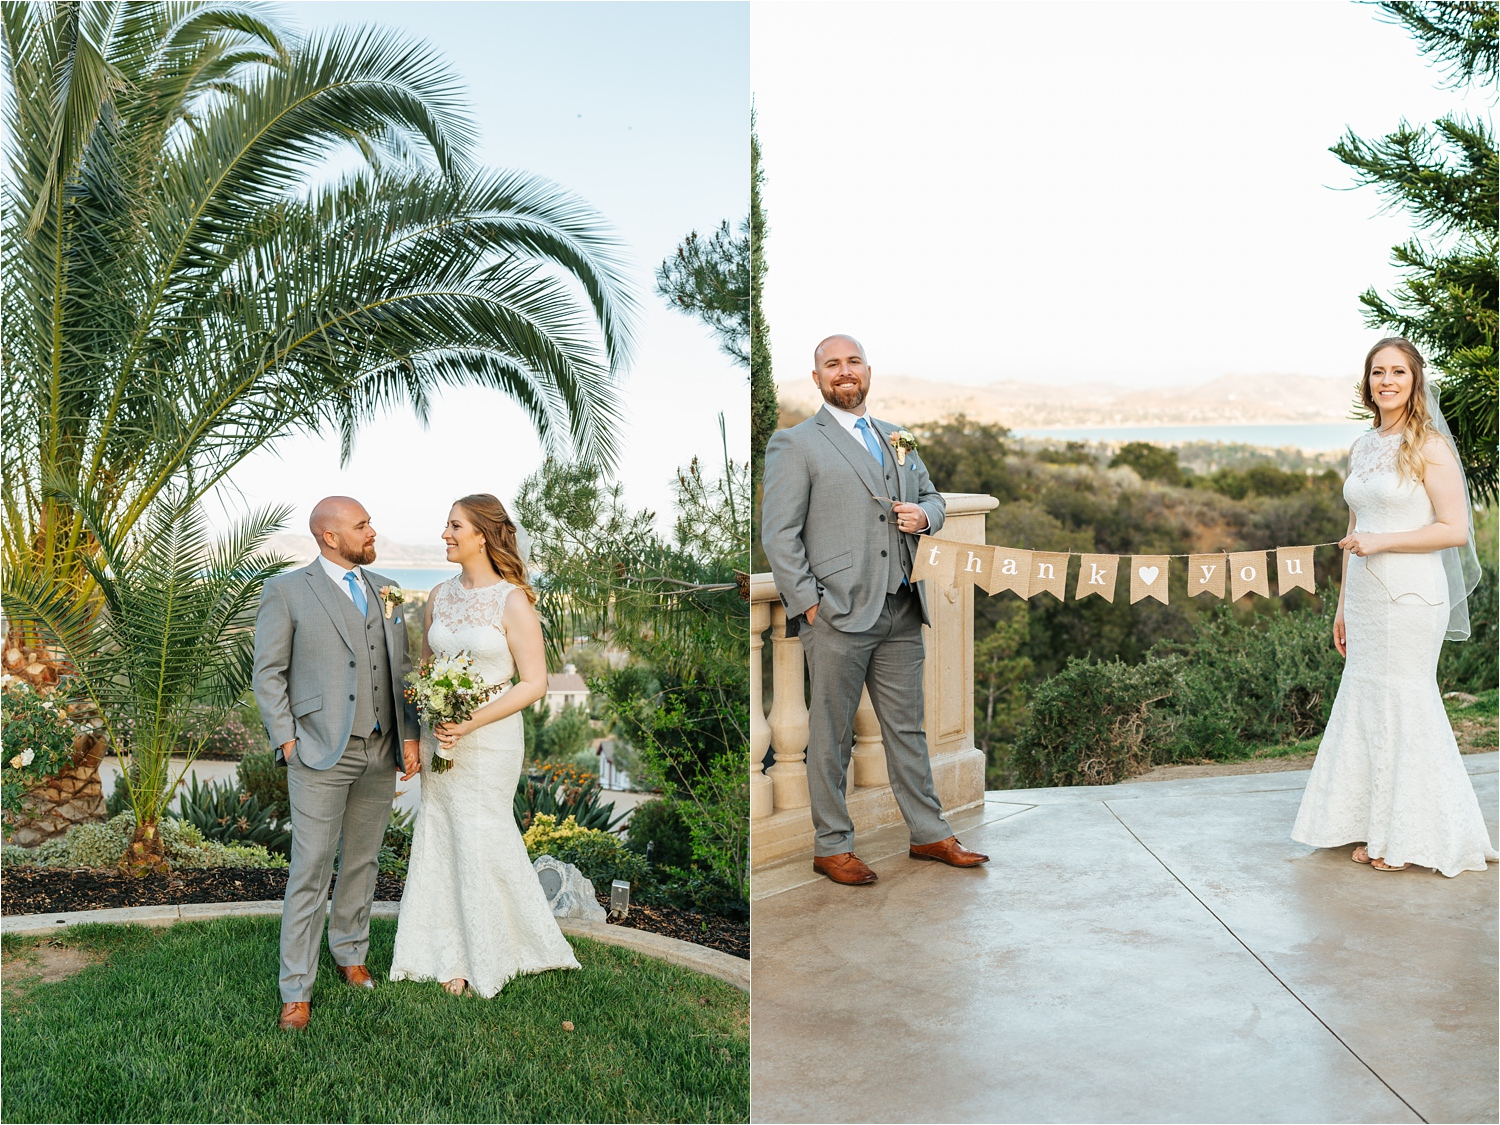 Southern California Backyard Wedding - https://brittneyhannonphotography.com